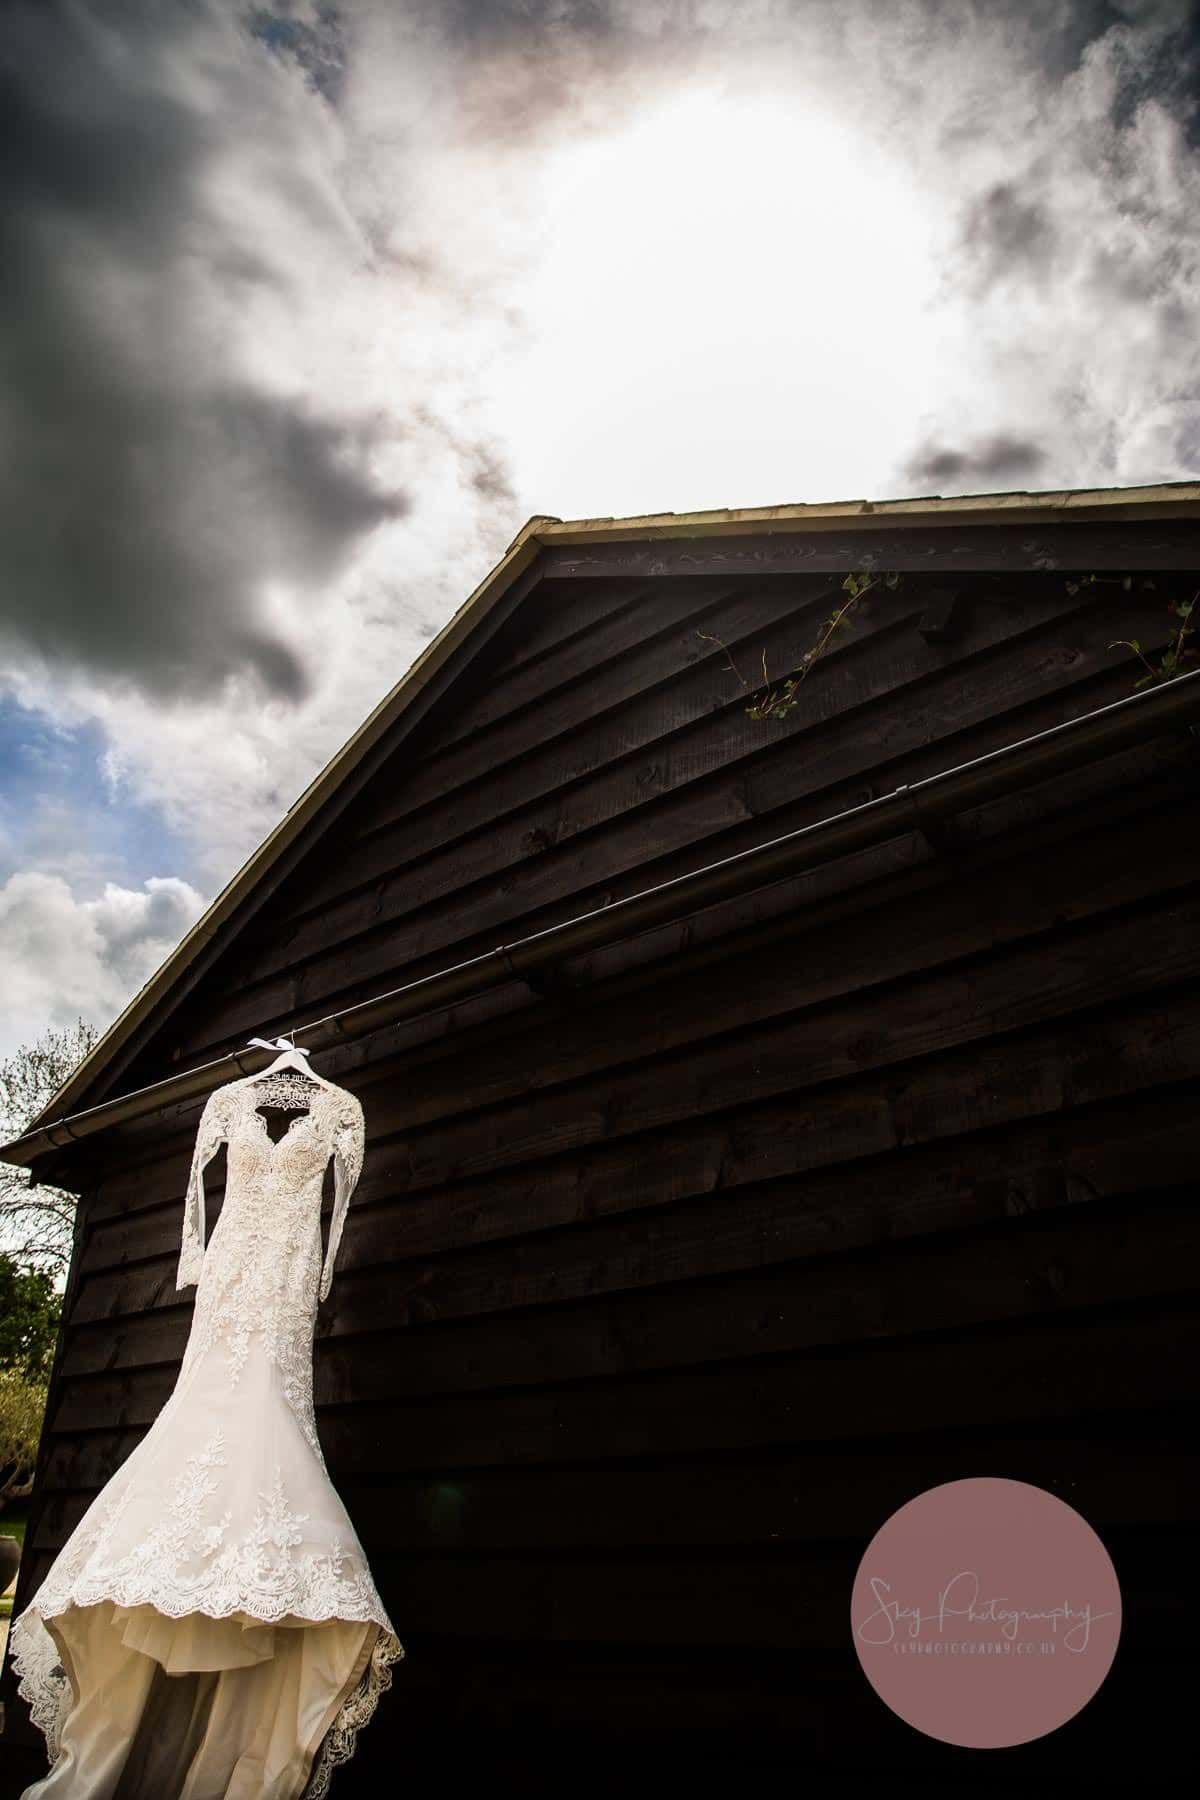 Wedding Dress hanging on the side of a barn at Dodford Manor